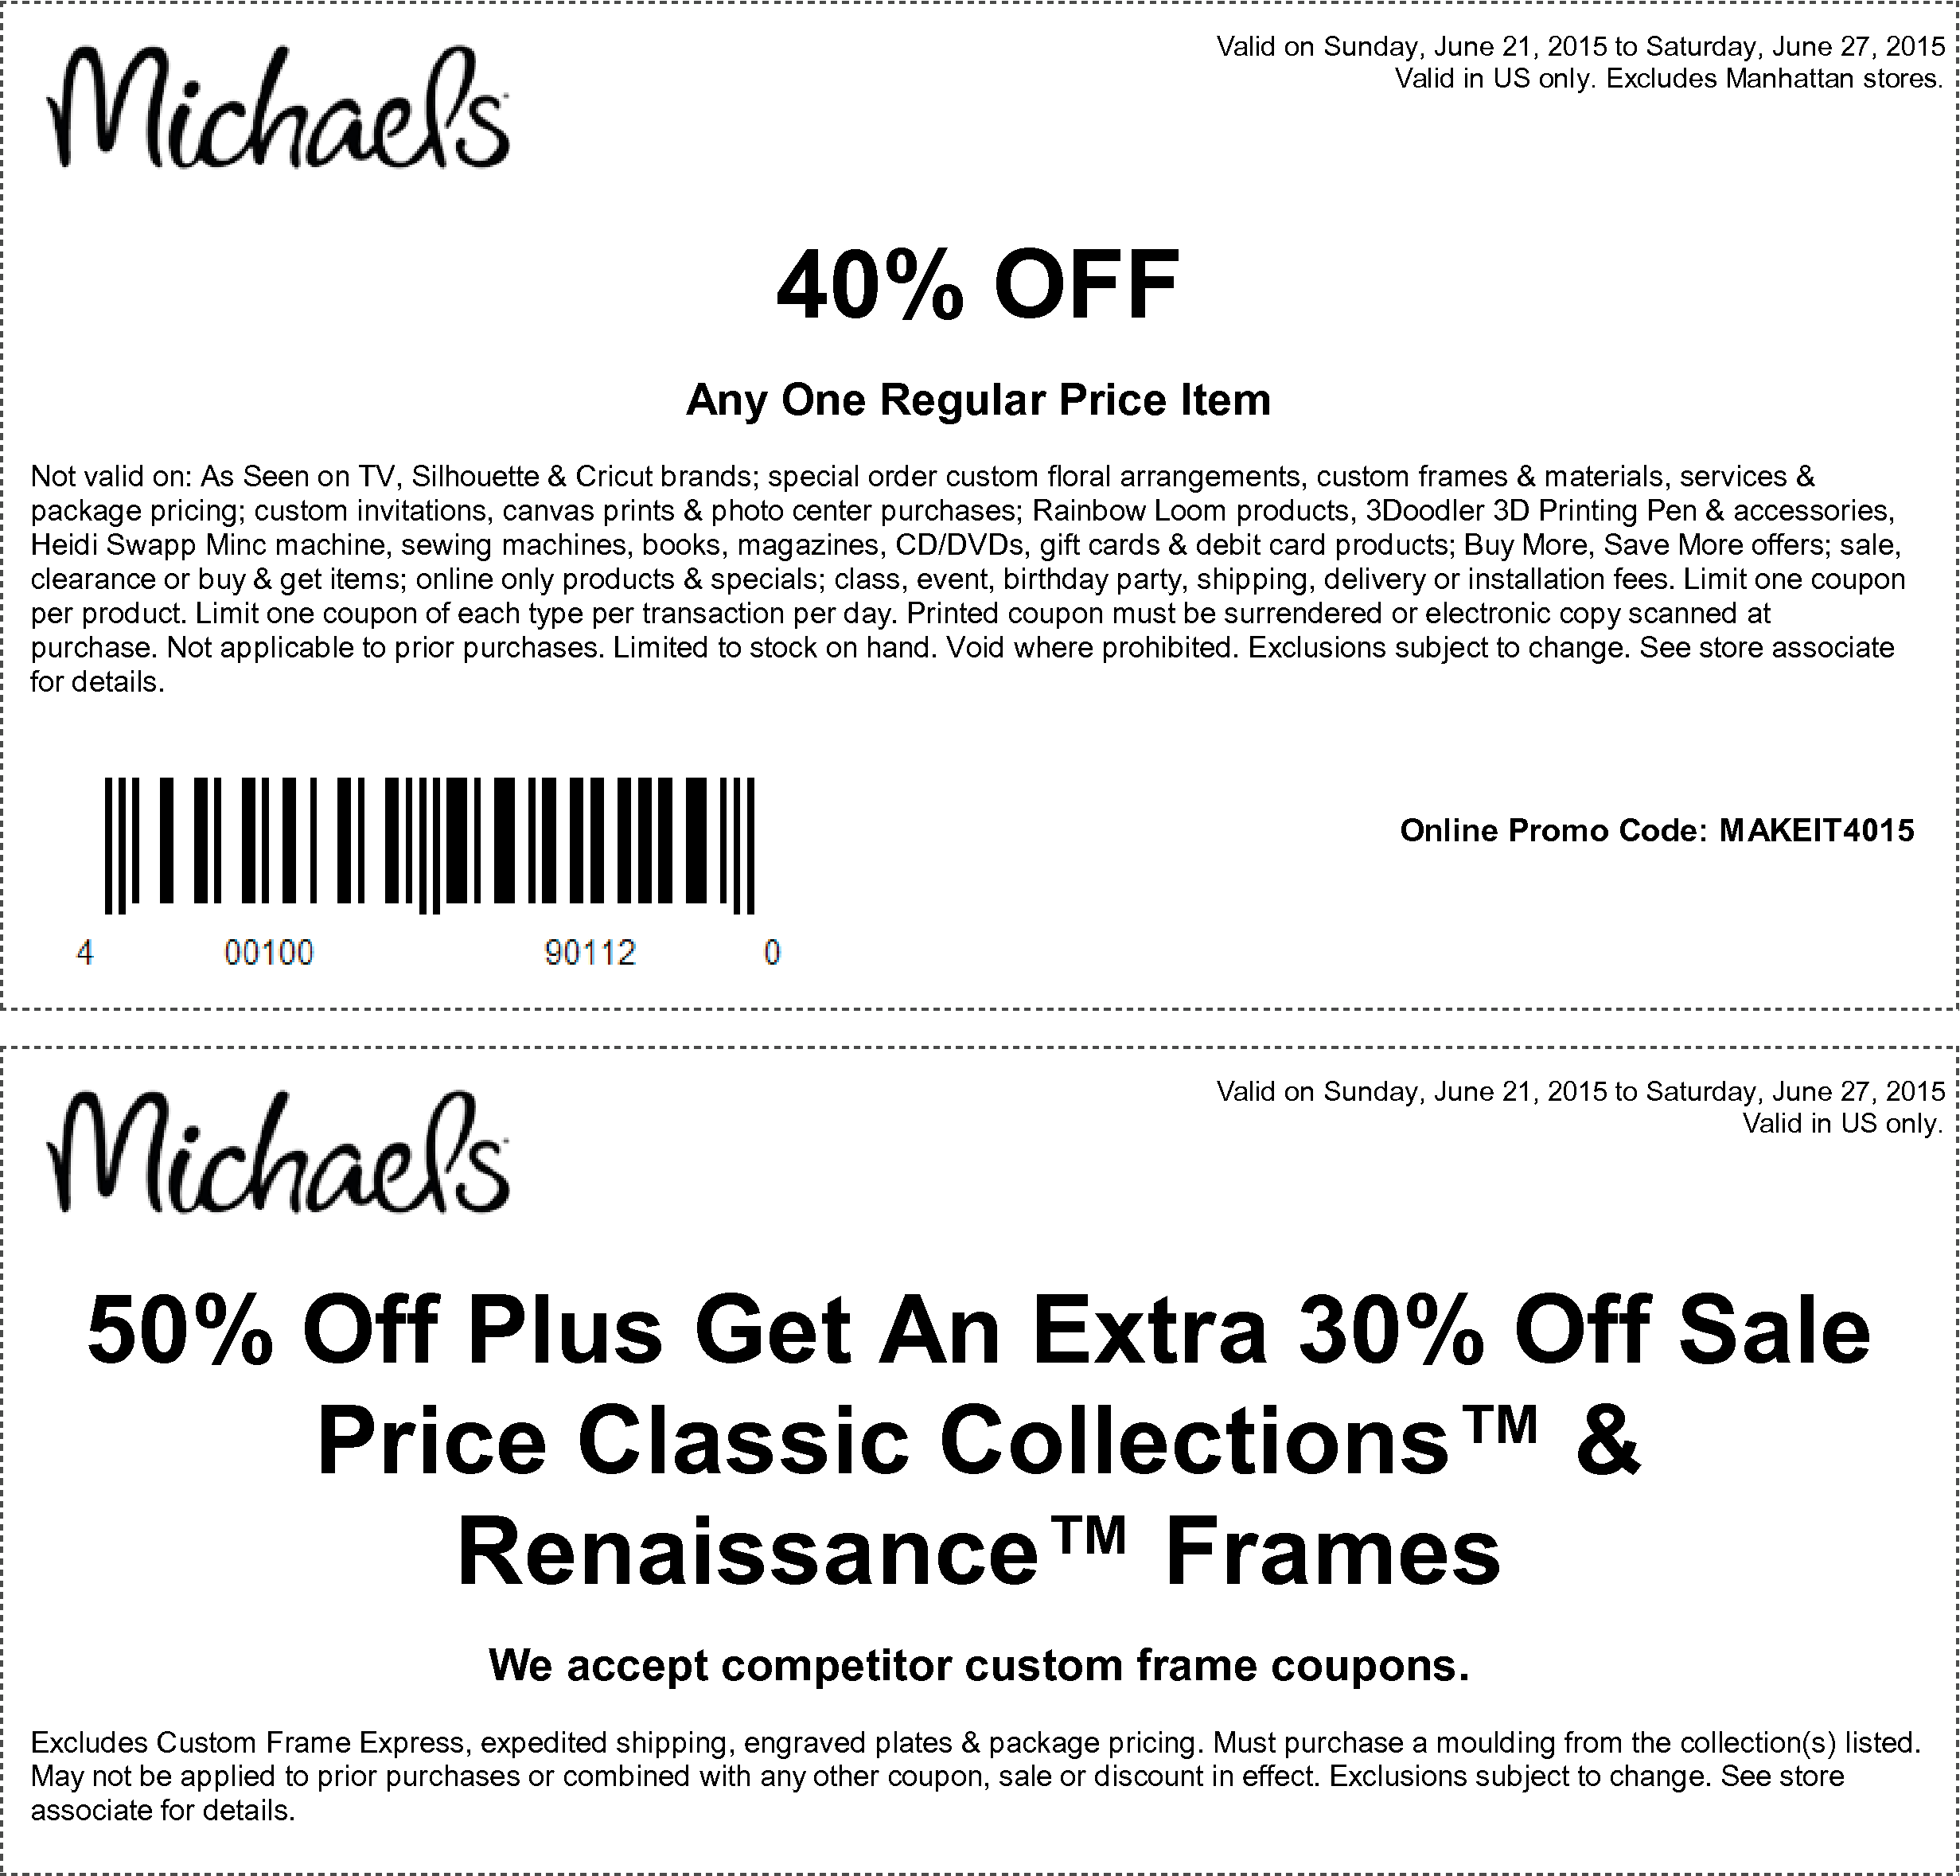 Michaels Coupon January 2017 40% off a single item at Michaels, or online via promo code MAKEIT4015